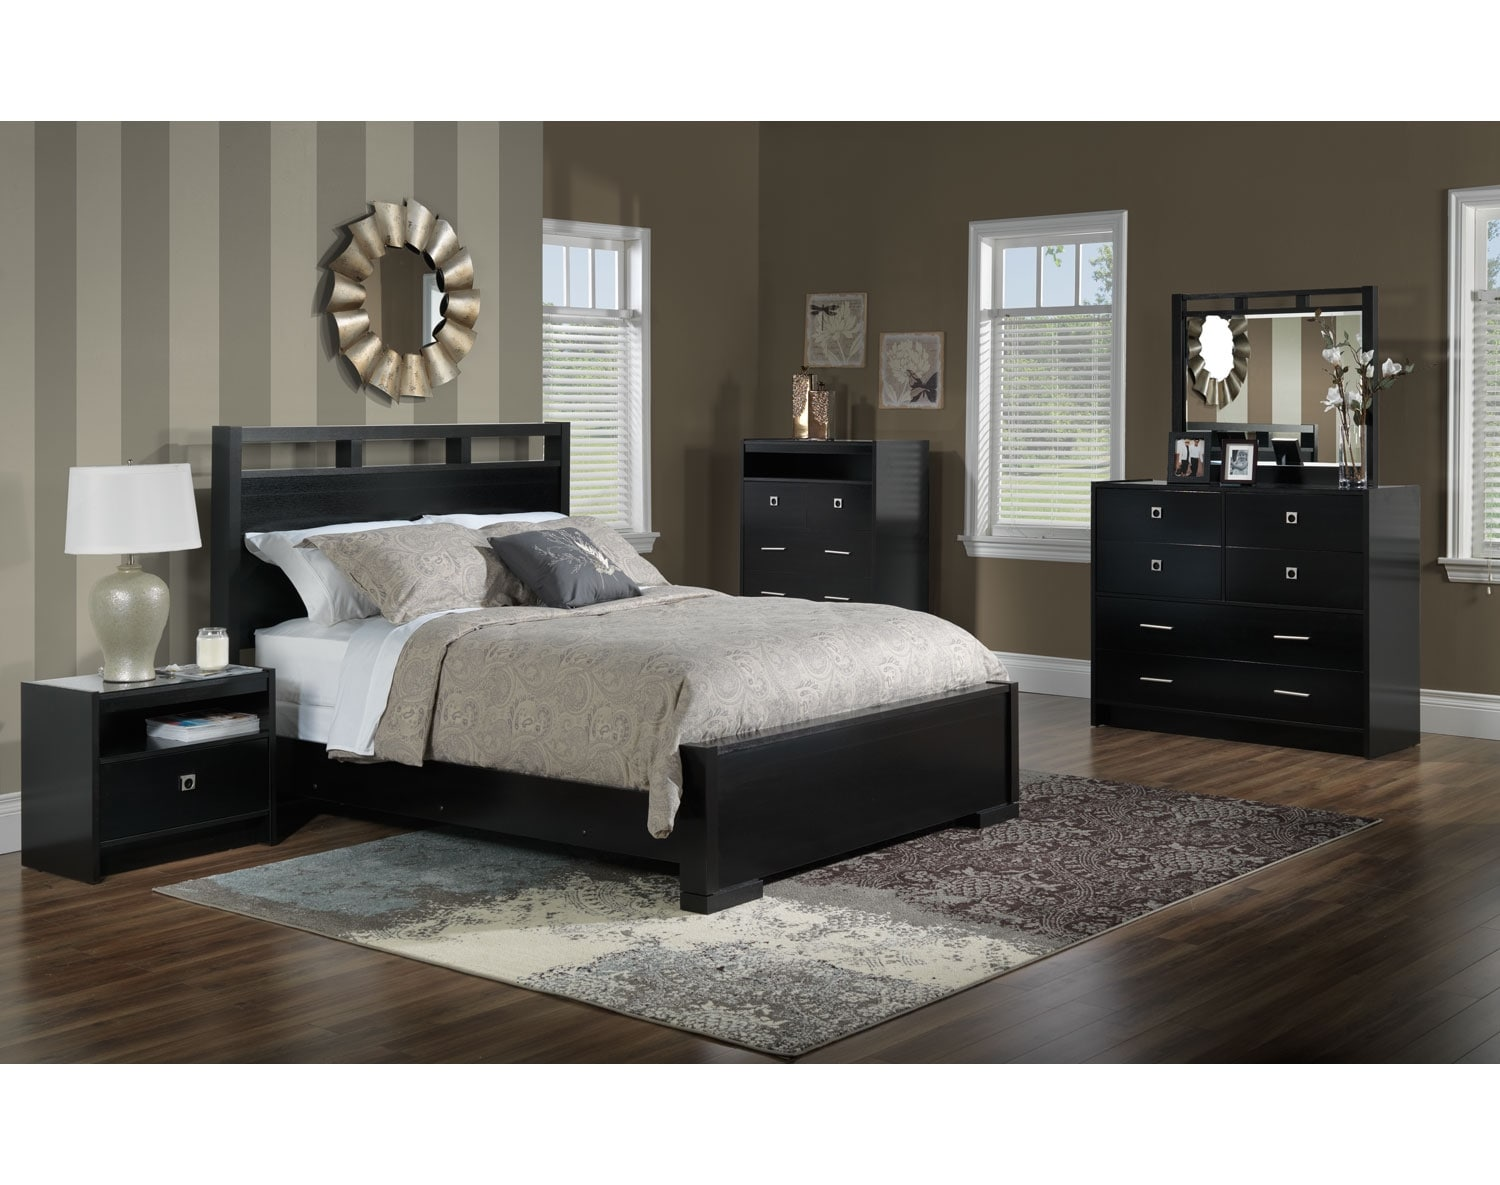 Altissa Bedroom Collection